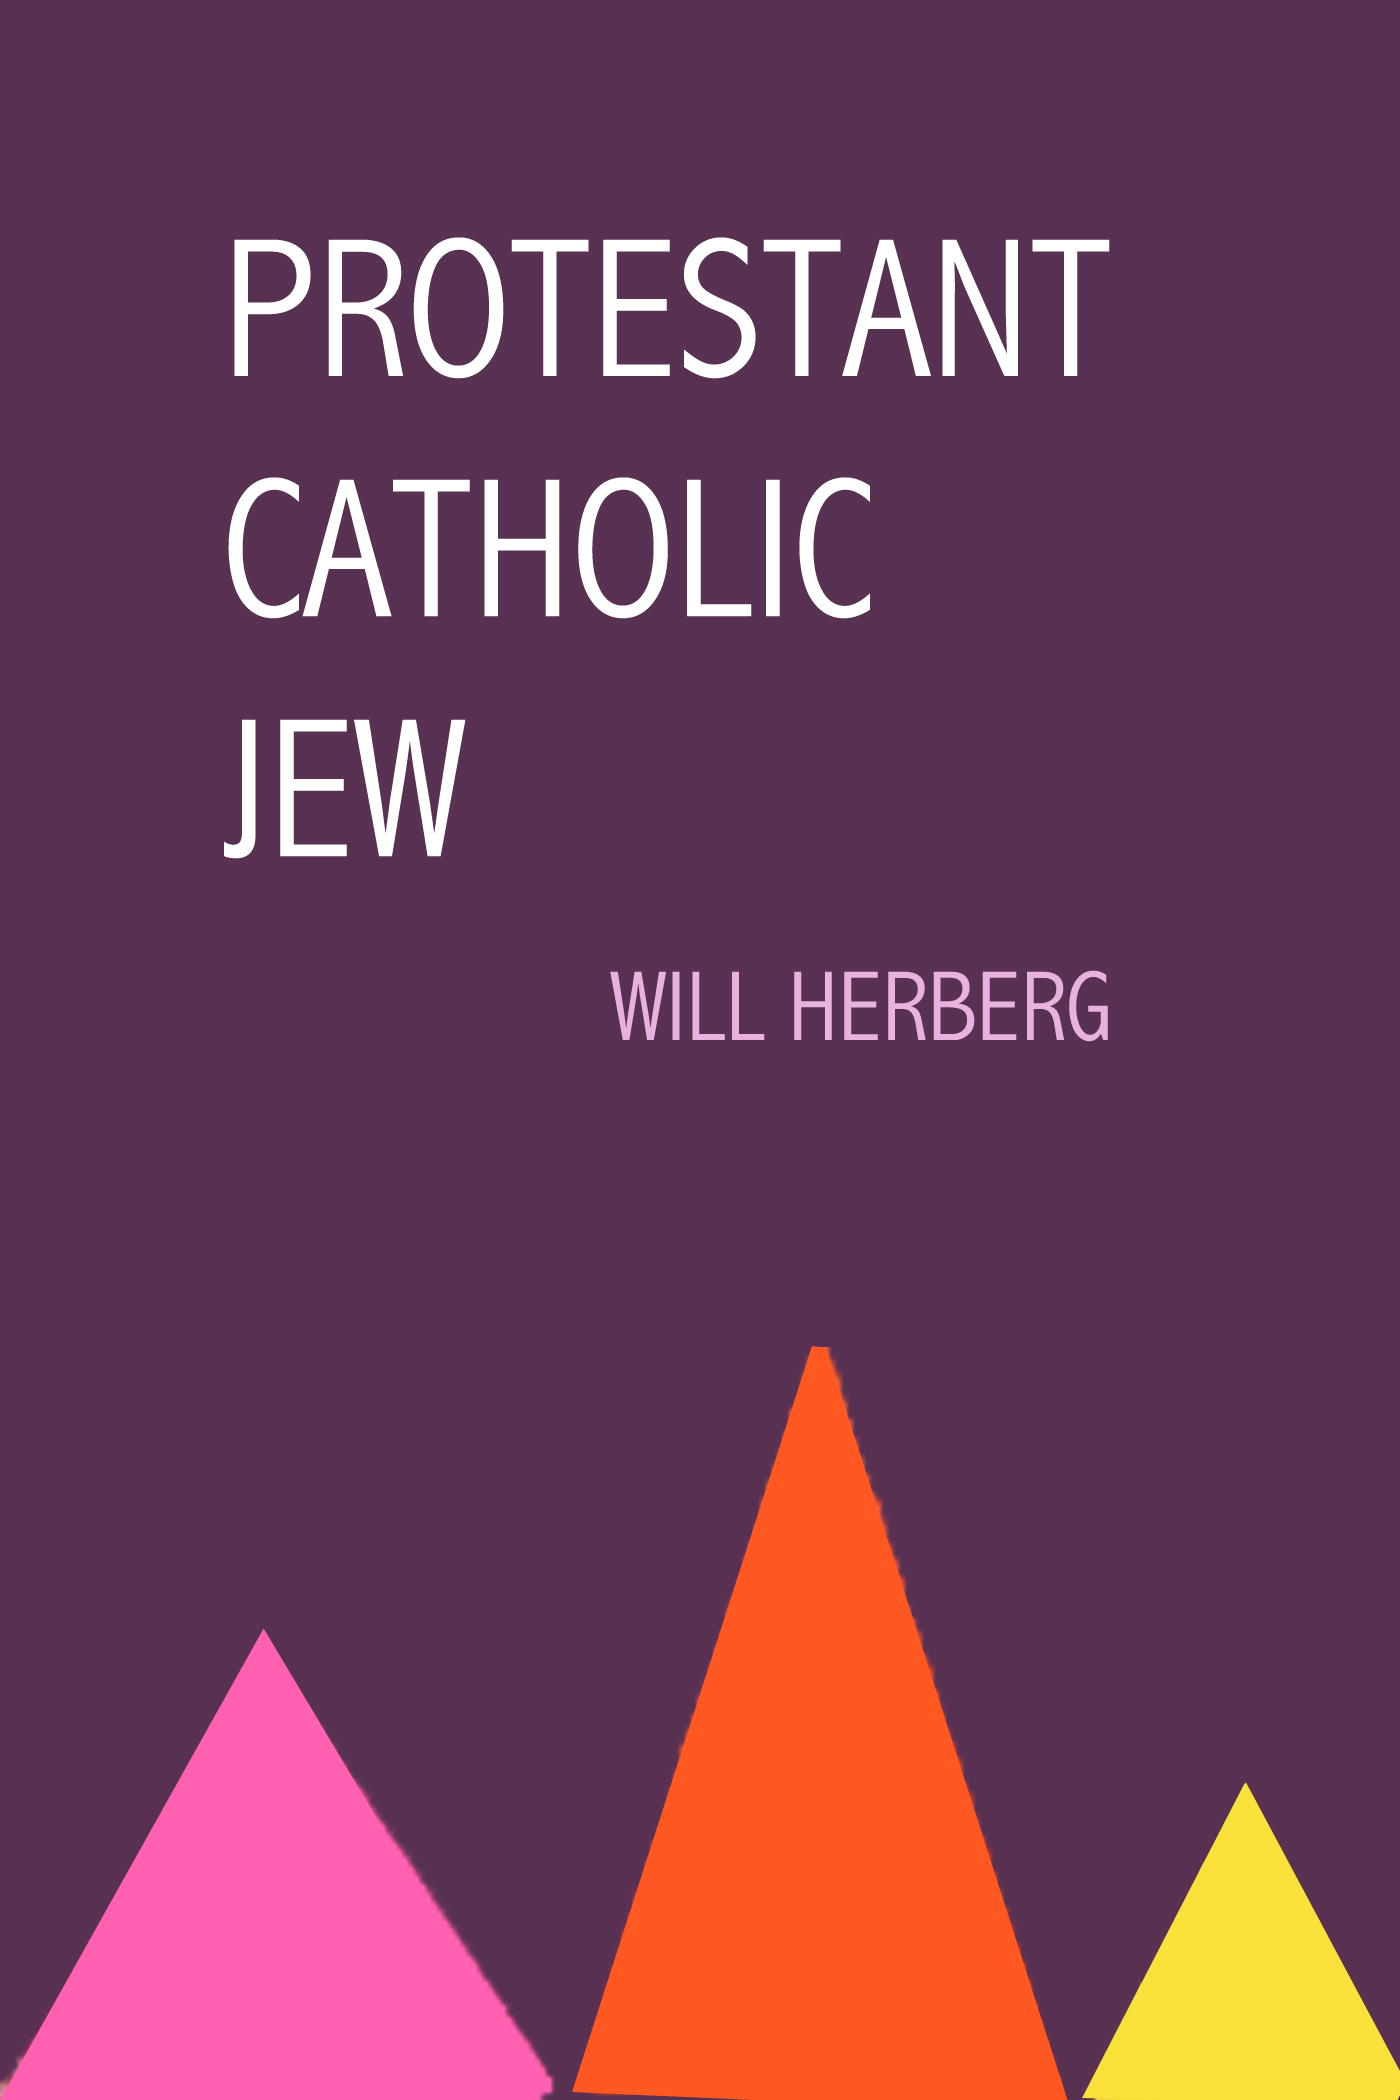 Protestant, Catholic, Jew By: Will Herberg